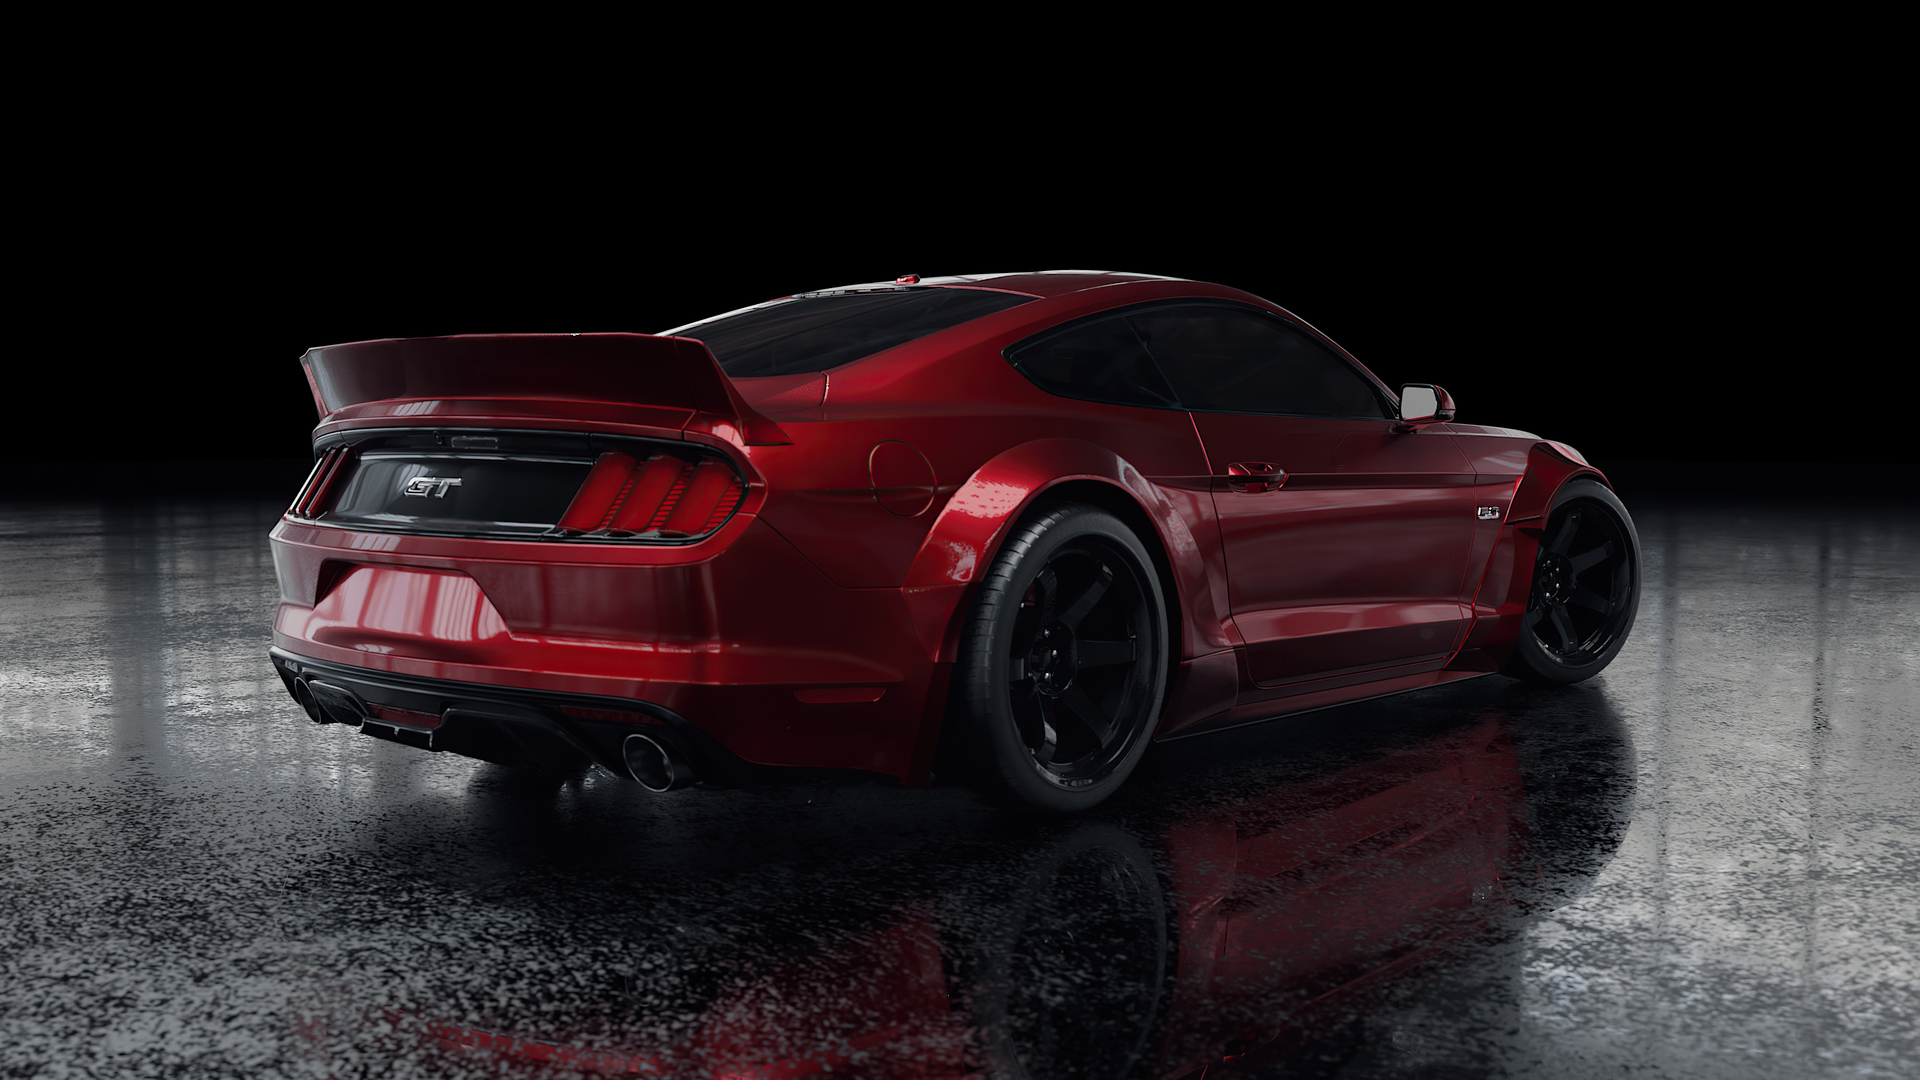 1920x1080 Red Ford Mustang Rear Laptop Full Hd 1080p Hd 4k Wallpapers Images Backgrounds Photos And Pictures